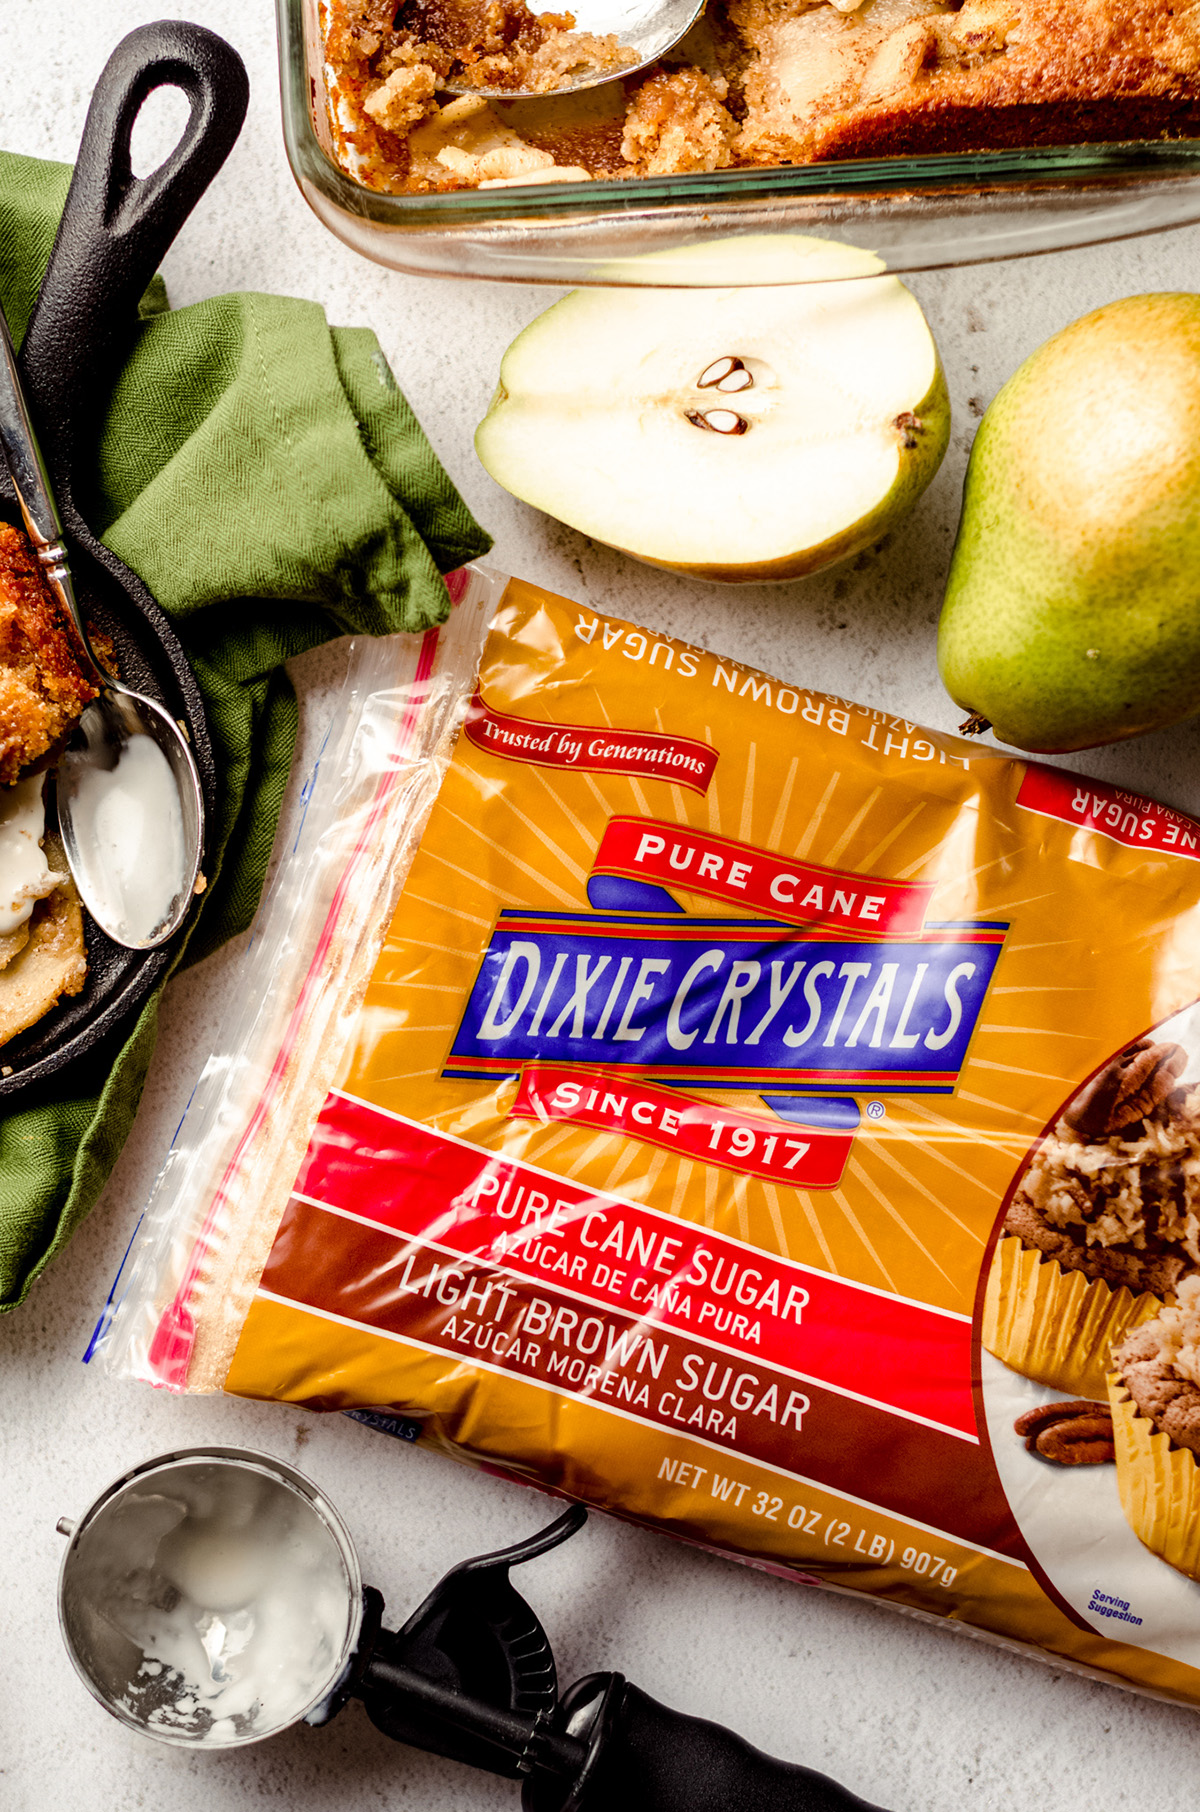 aerial photo of dixie crystals brown sugar and pears